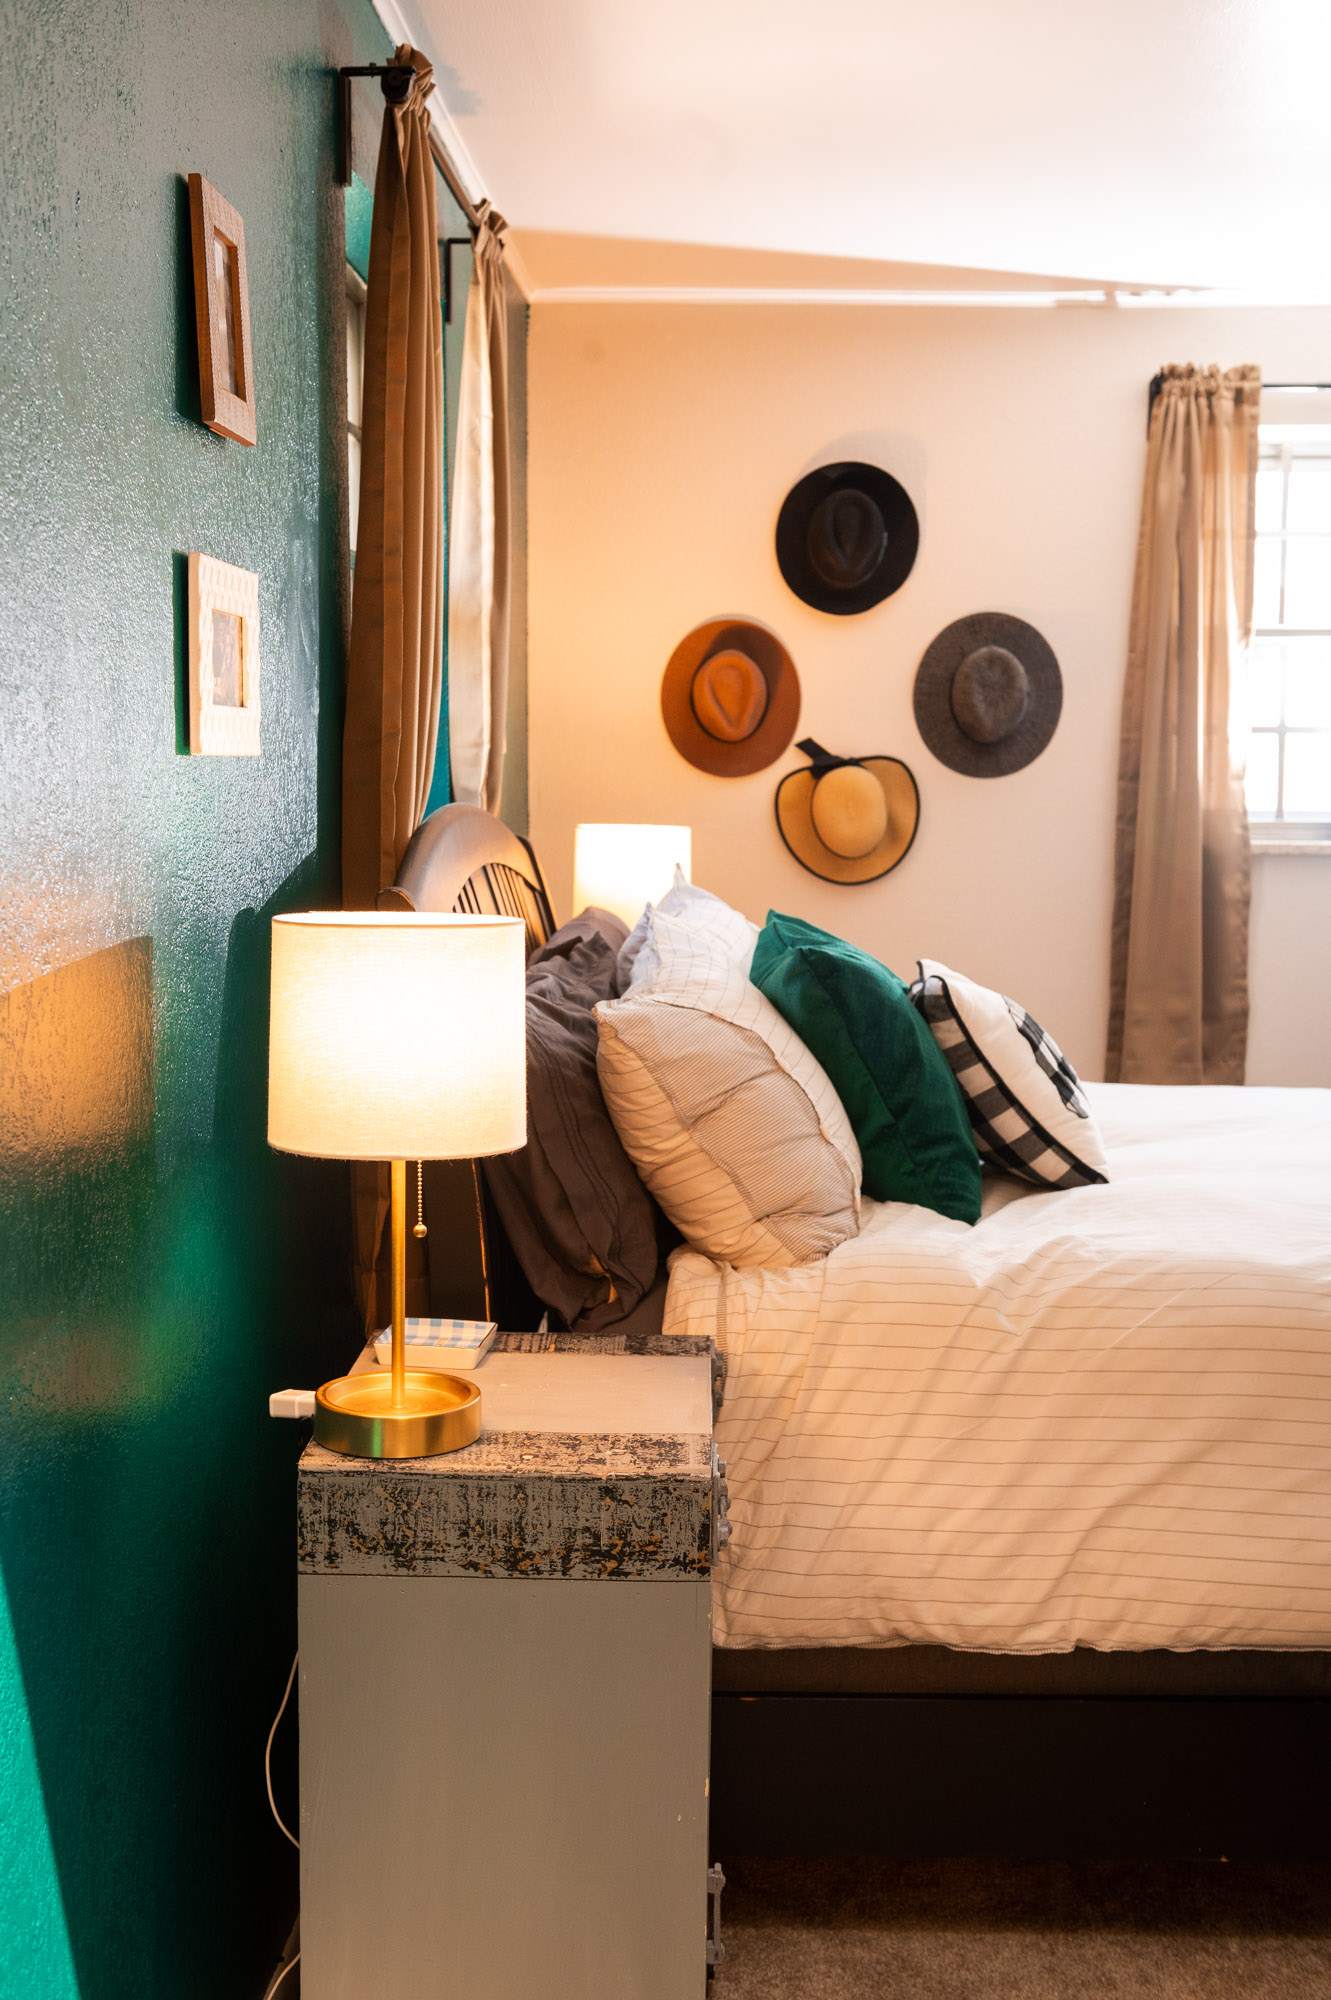 Side view of our west elm bedspread agains the emerald green wall